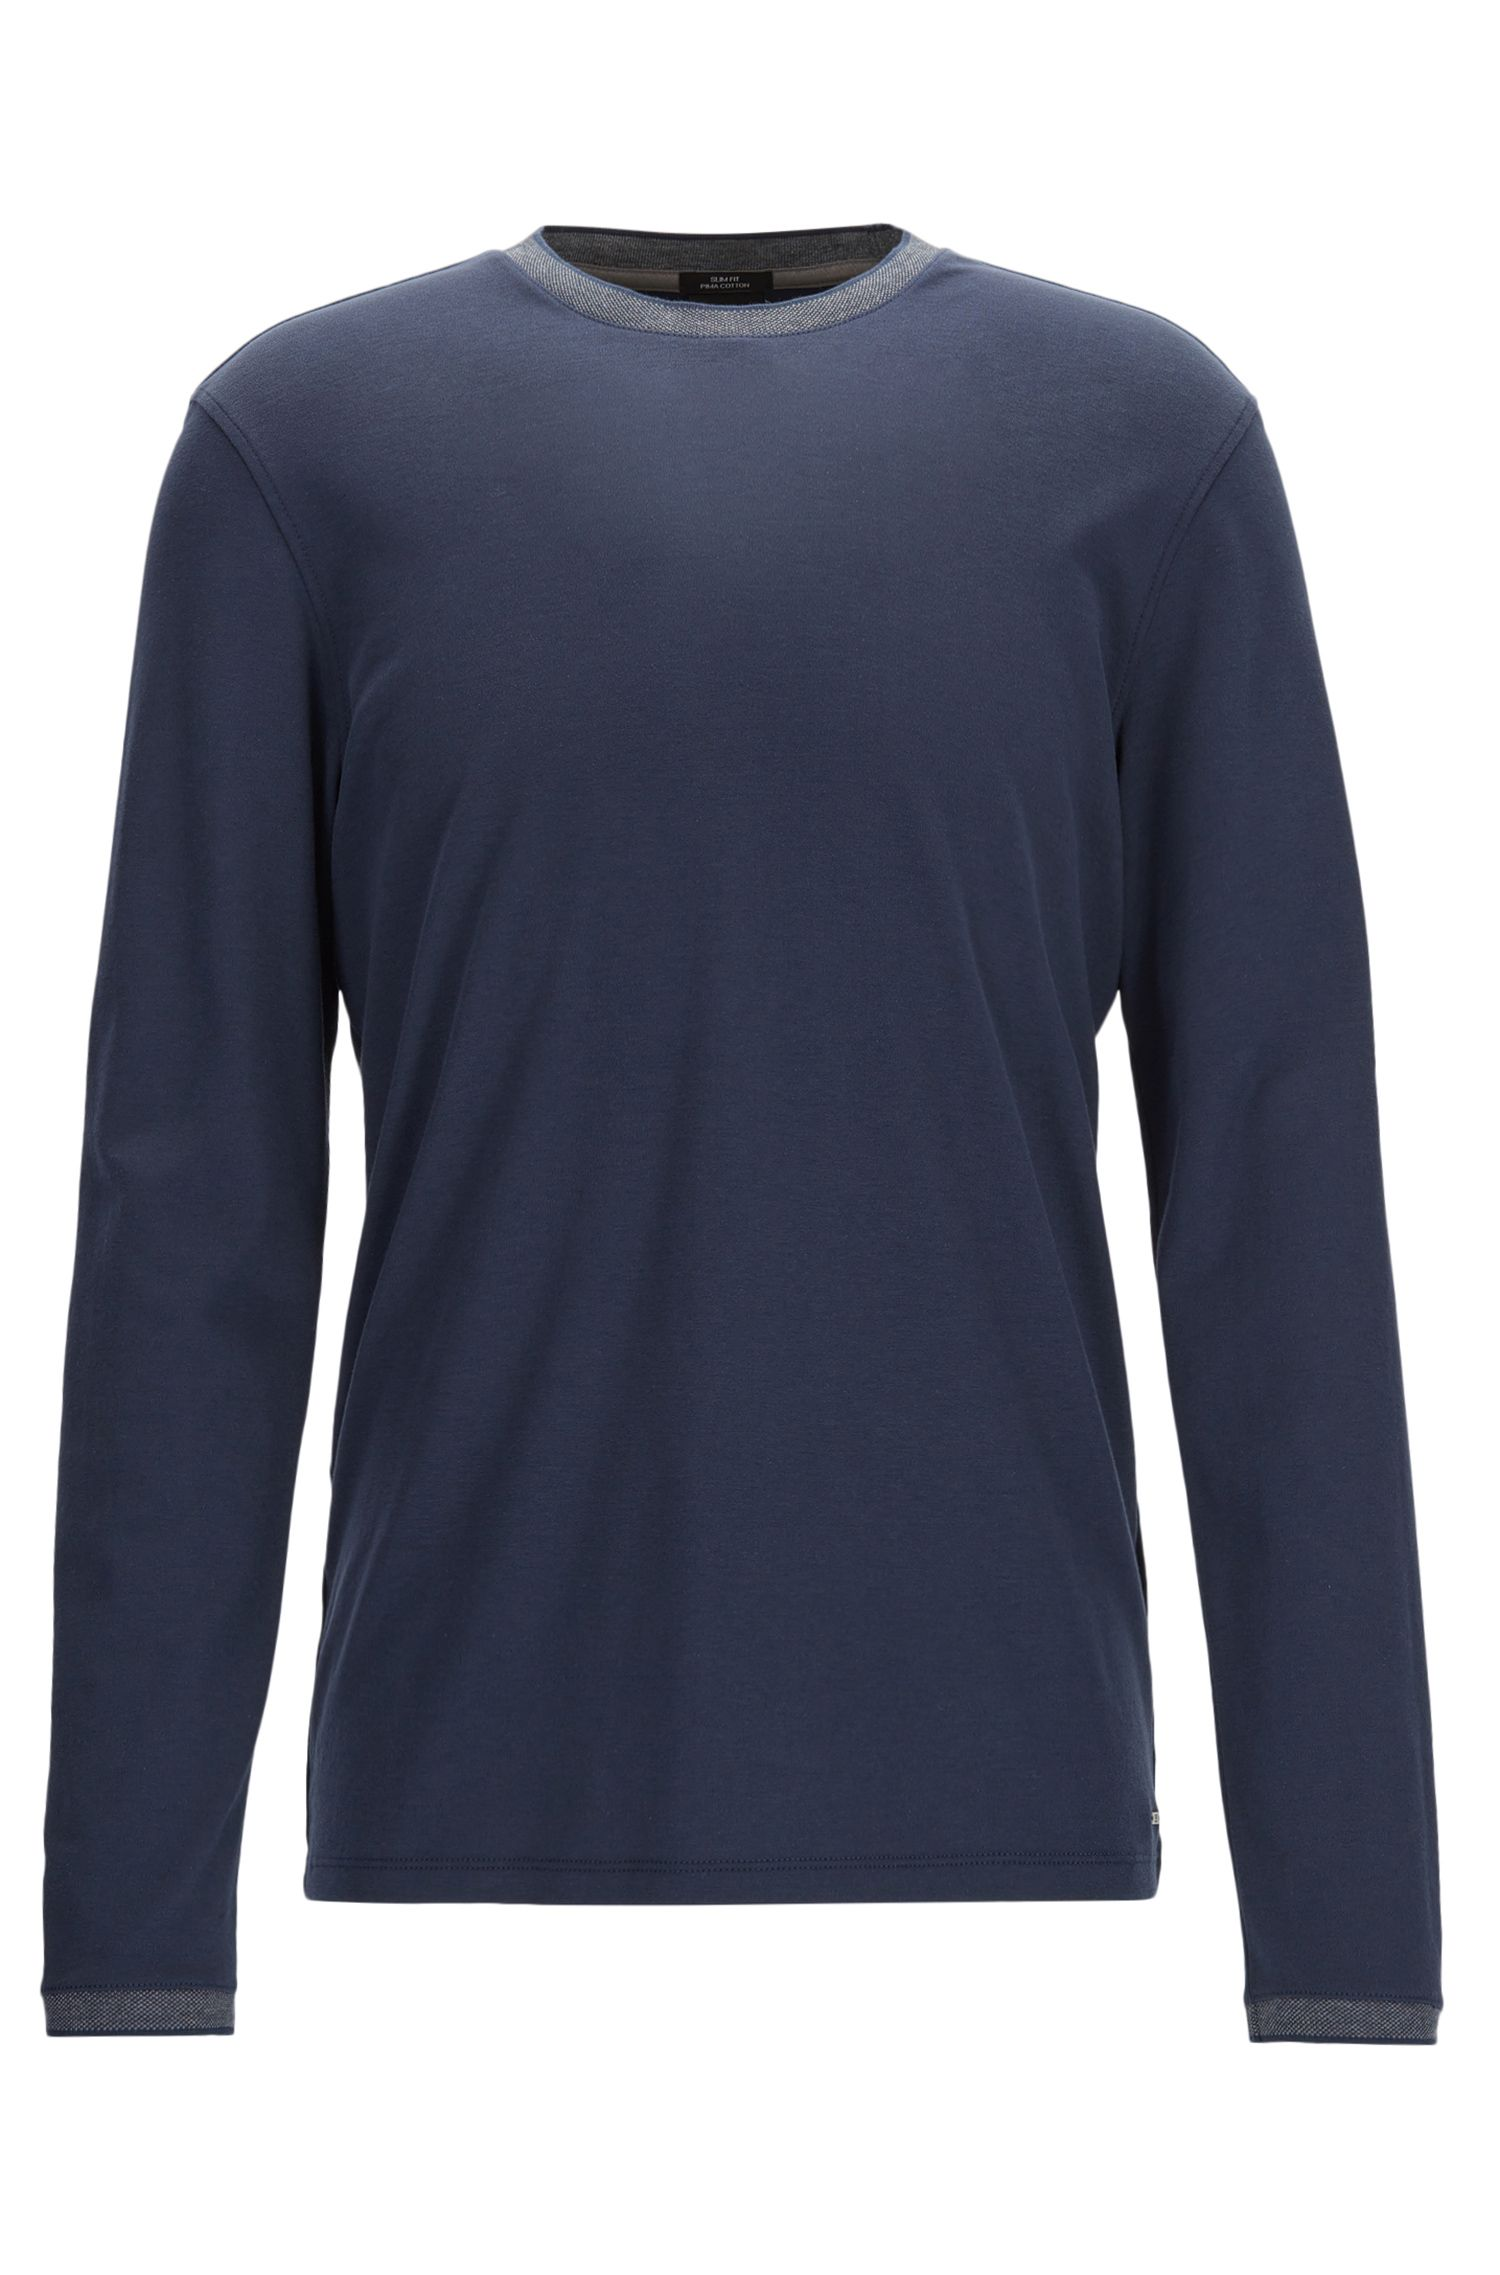 Slim-fit long-sleeved T-shirt in interlock cotton